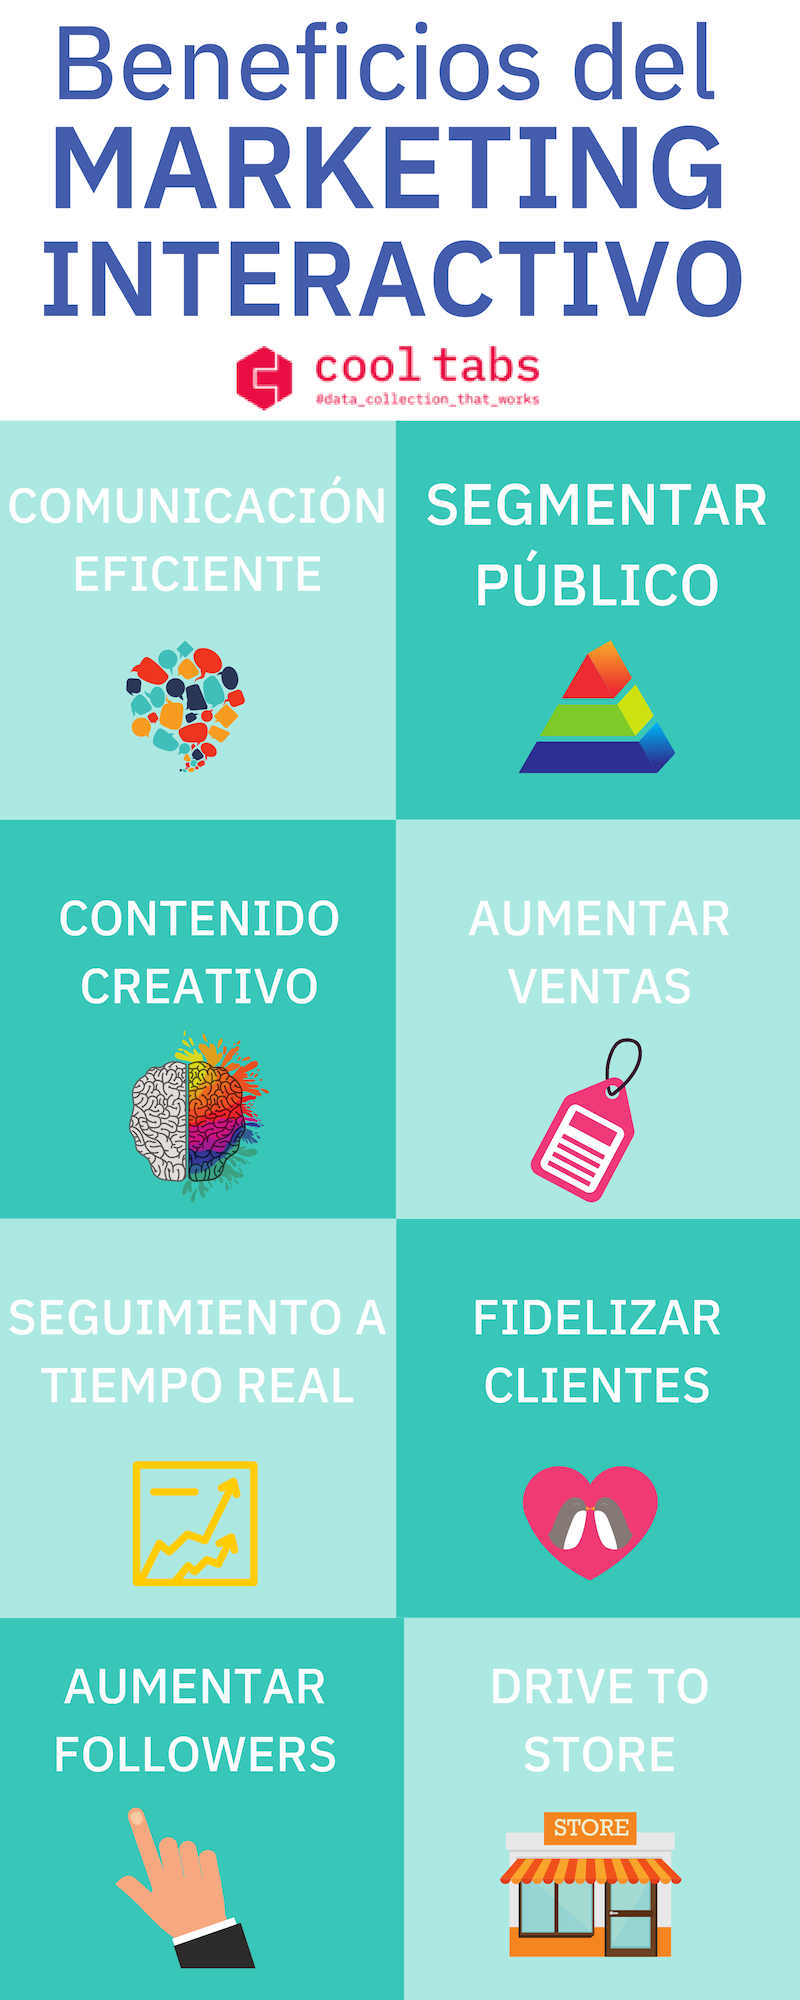 beneficios del marketing interactivo